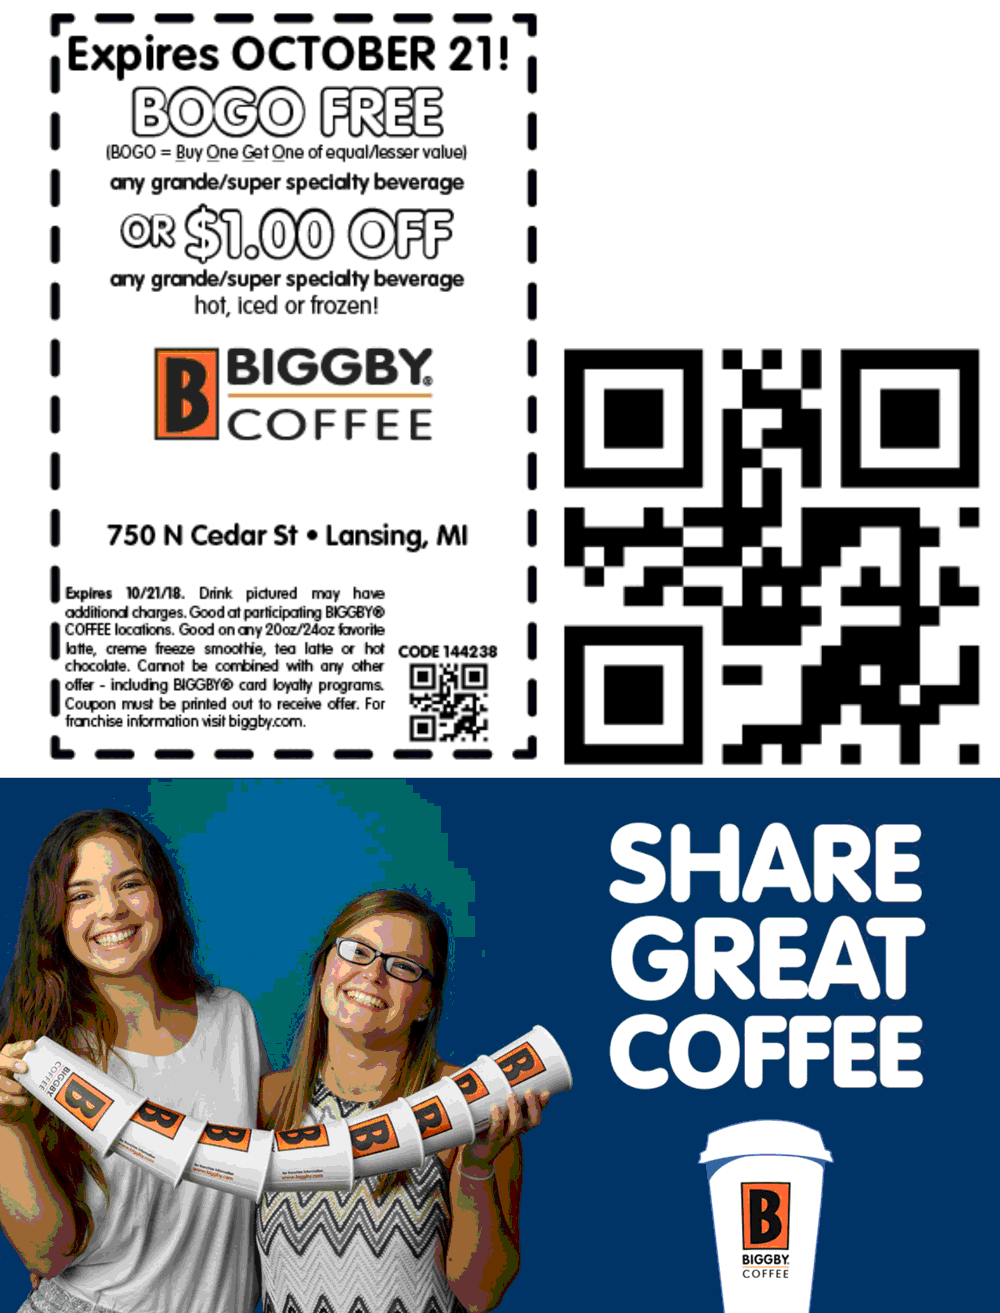 Biggby Coffee coupons & promo code for [September 2020]